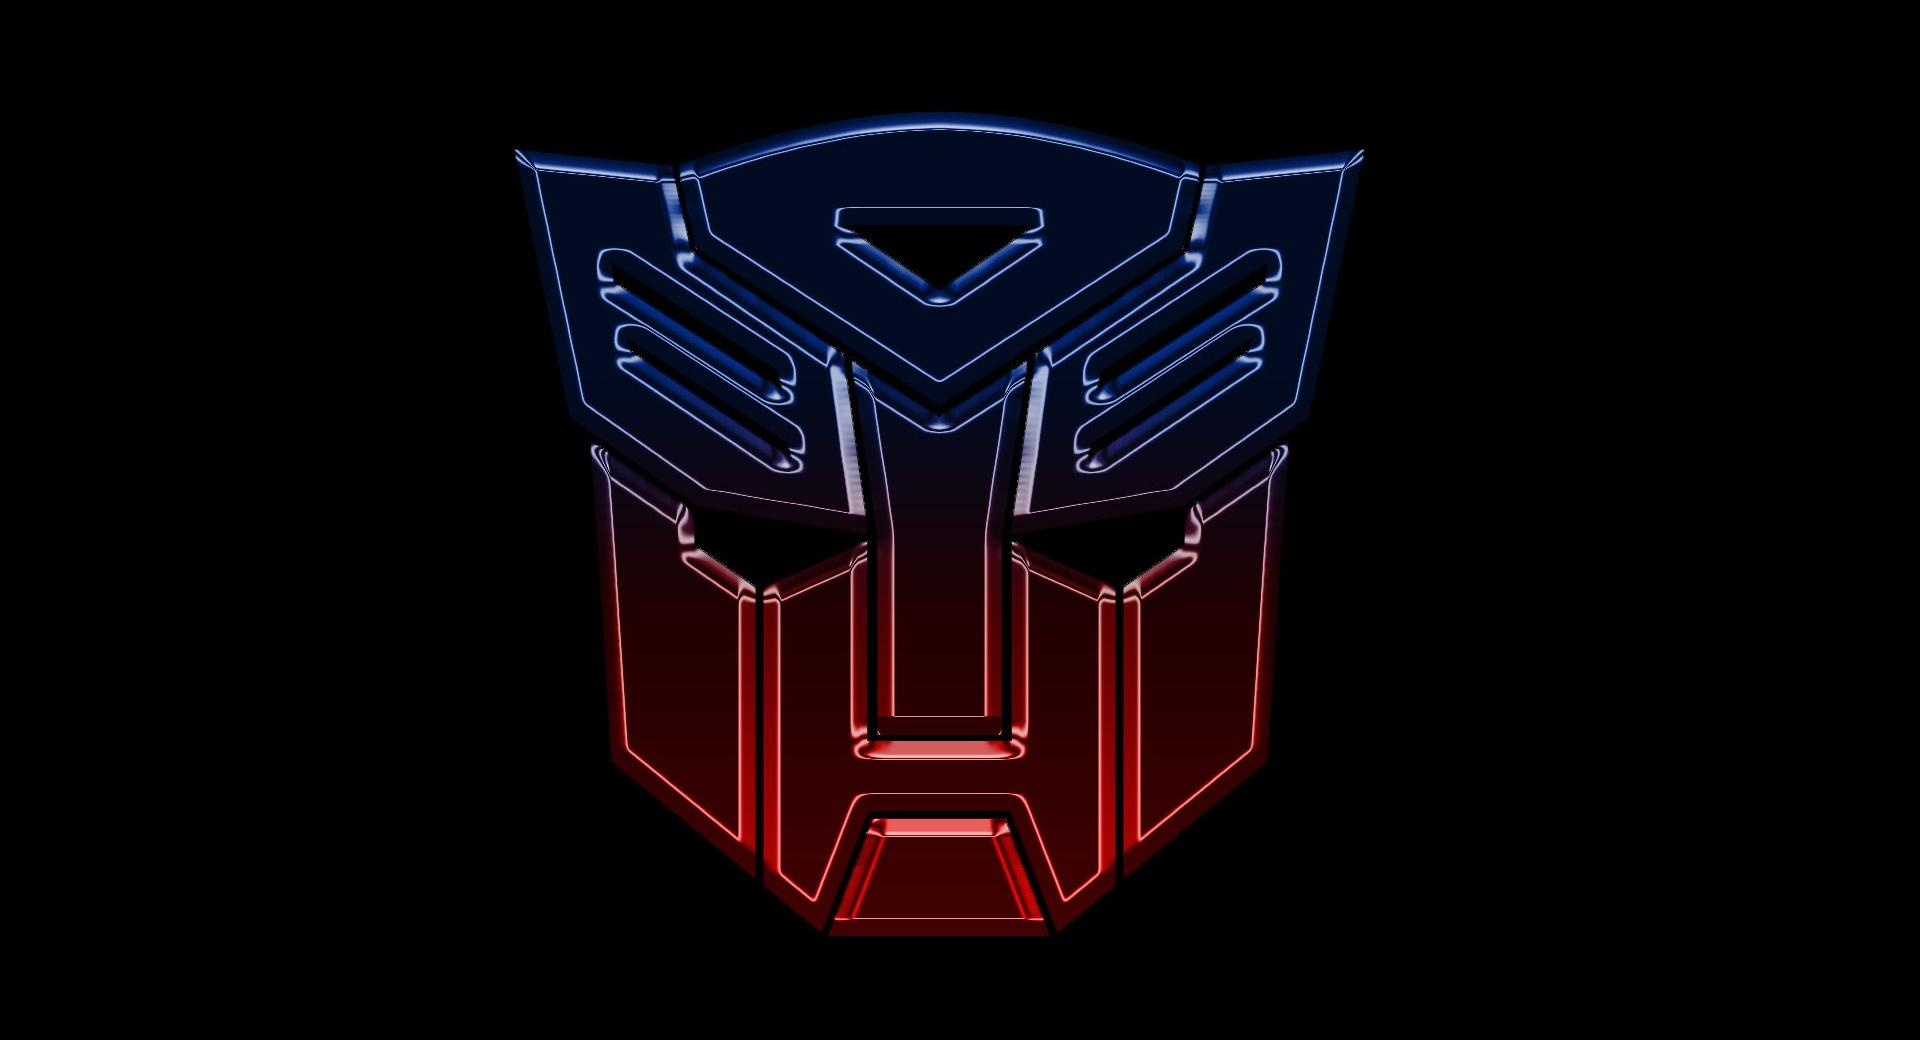 Transformers Autobots Logo Widescreen wallpapers HD quality